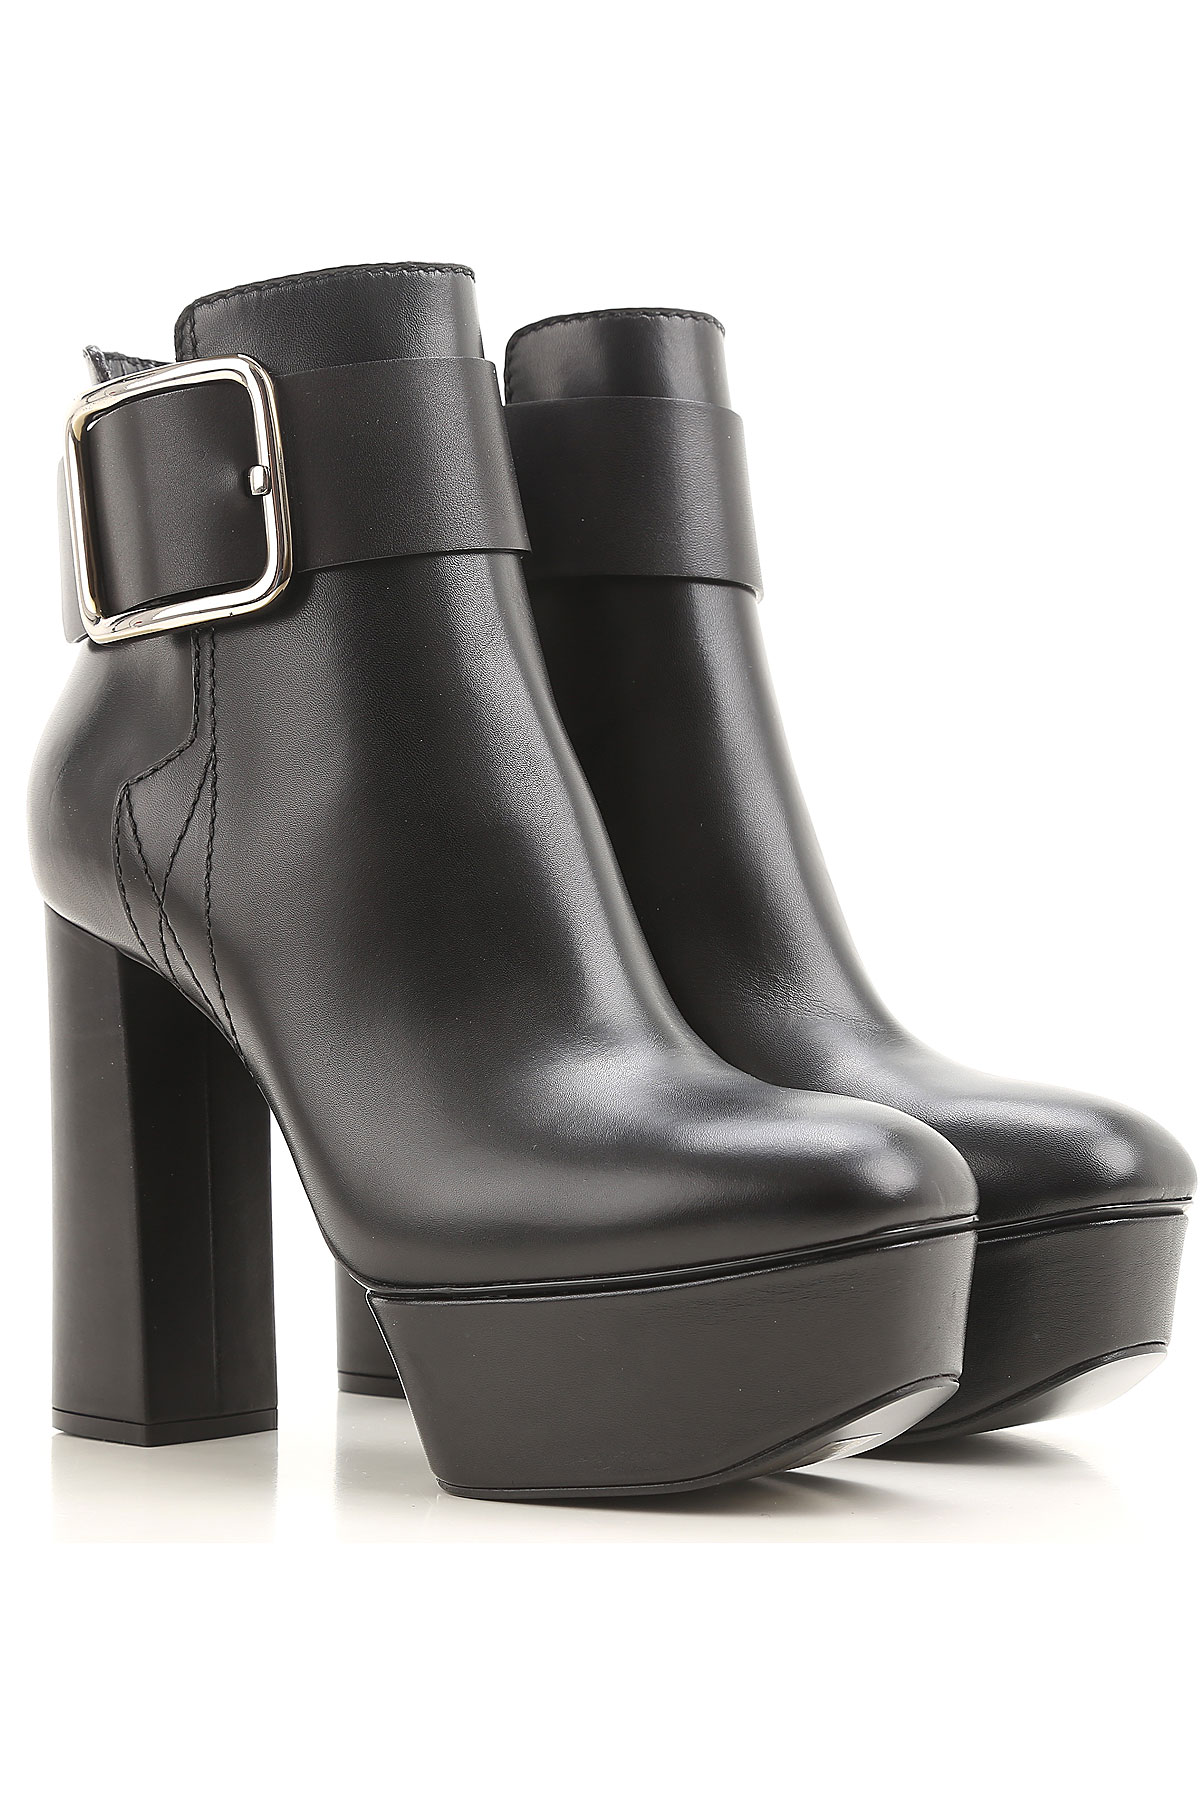 Casadei Boots for Women, Booties On Sale in Outlet, Black, Leather, 2019, 10 5 9